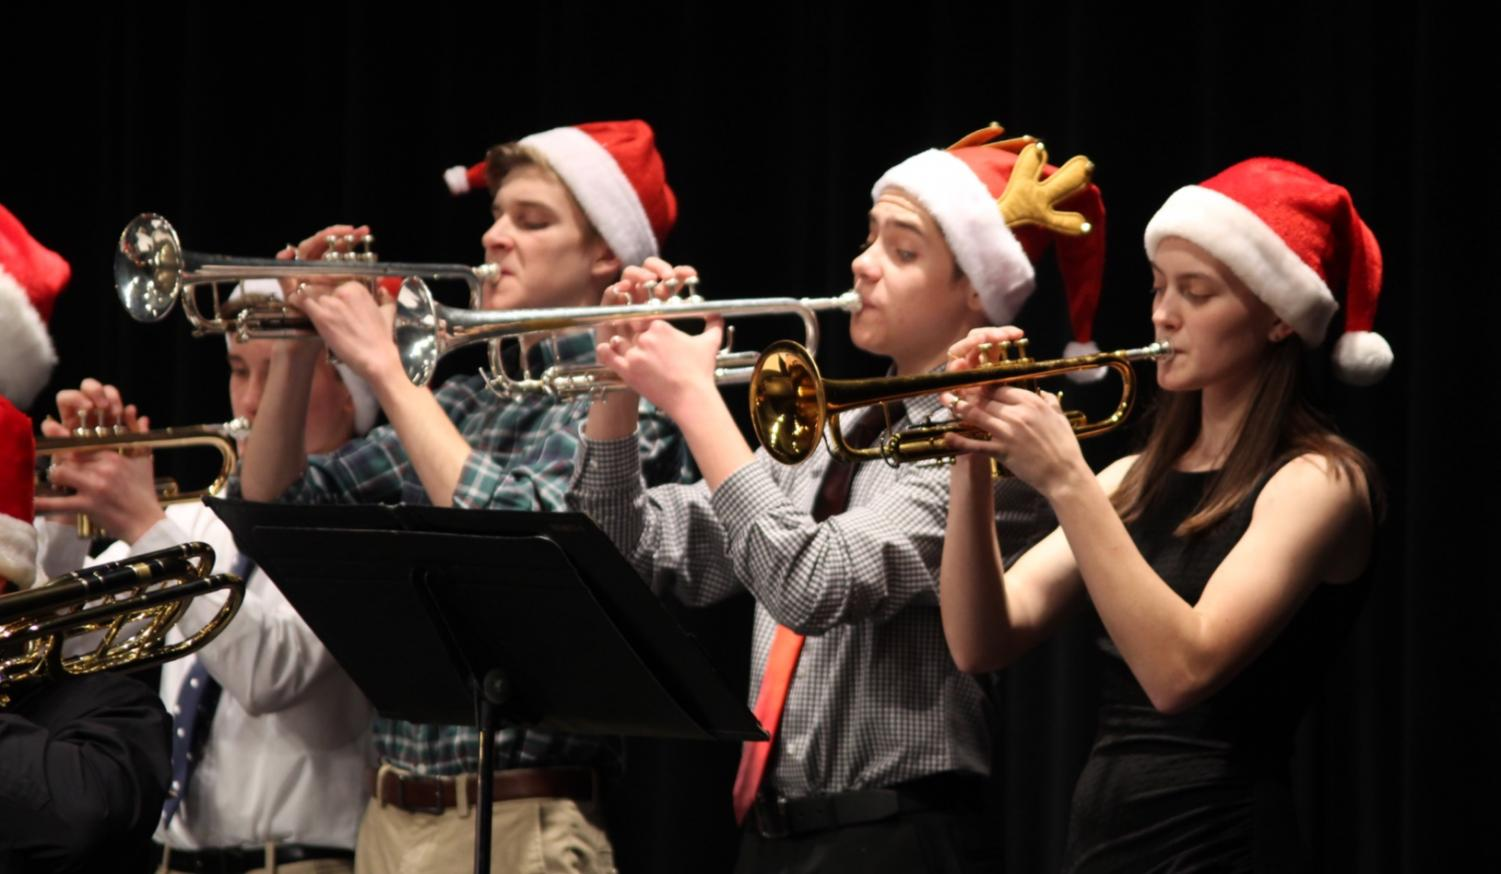 """Freshman Charles Lawrence and Ashton Lagassee and Senior Katelyn Stehlik blew into their trumpets during the winter concert. They played the classic song """"Joy to the World"""" to the delight of the audience. It was a classic version of the song."""